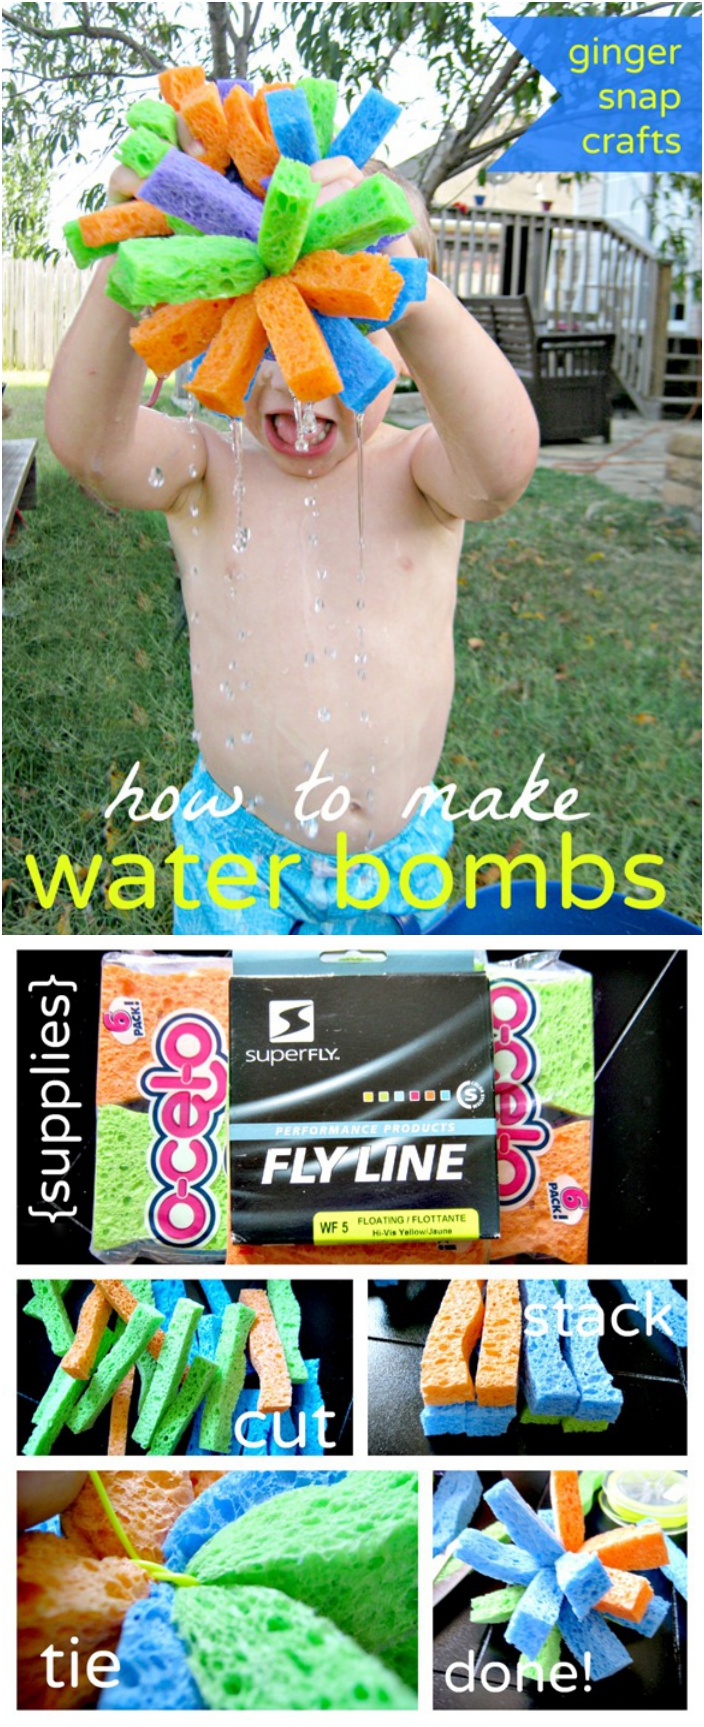 DIY Water Bombs with Sponges